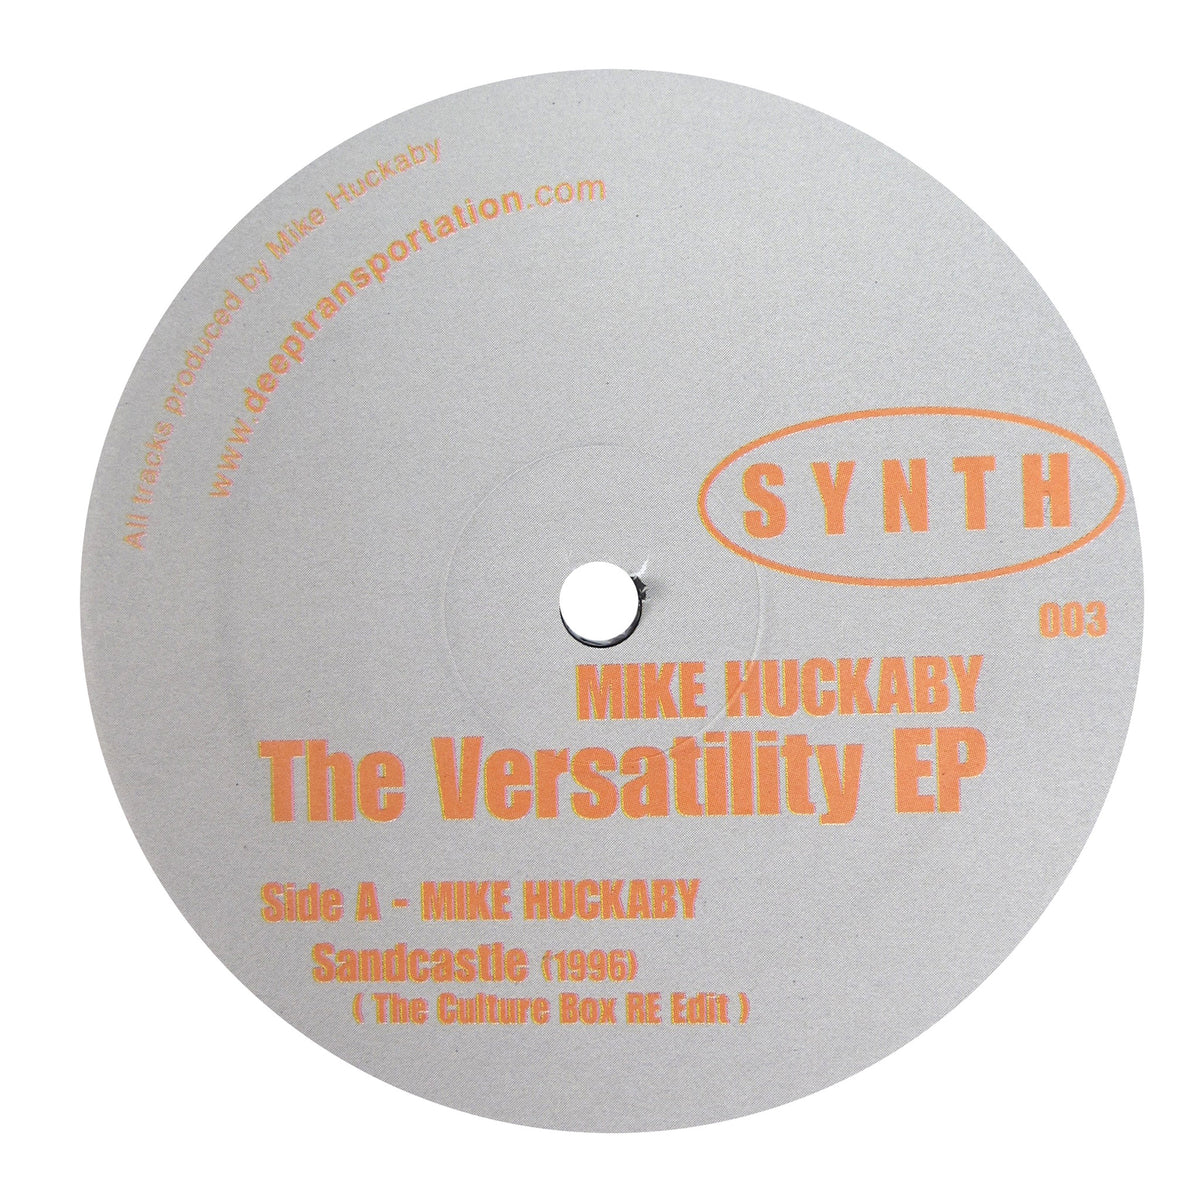 Mike Huckaby: The Versatility EP Vinyl 12""